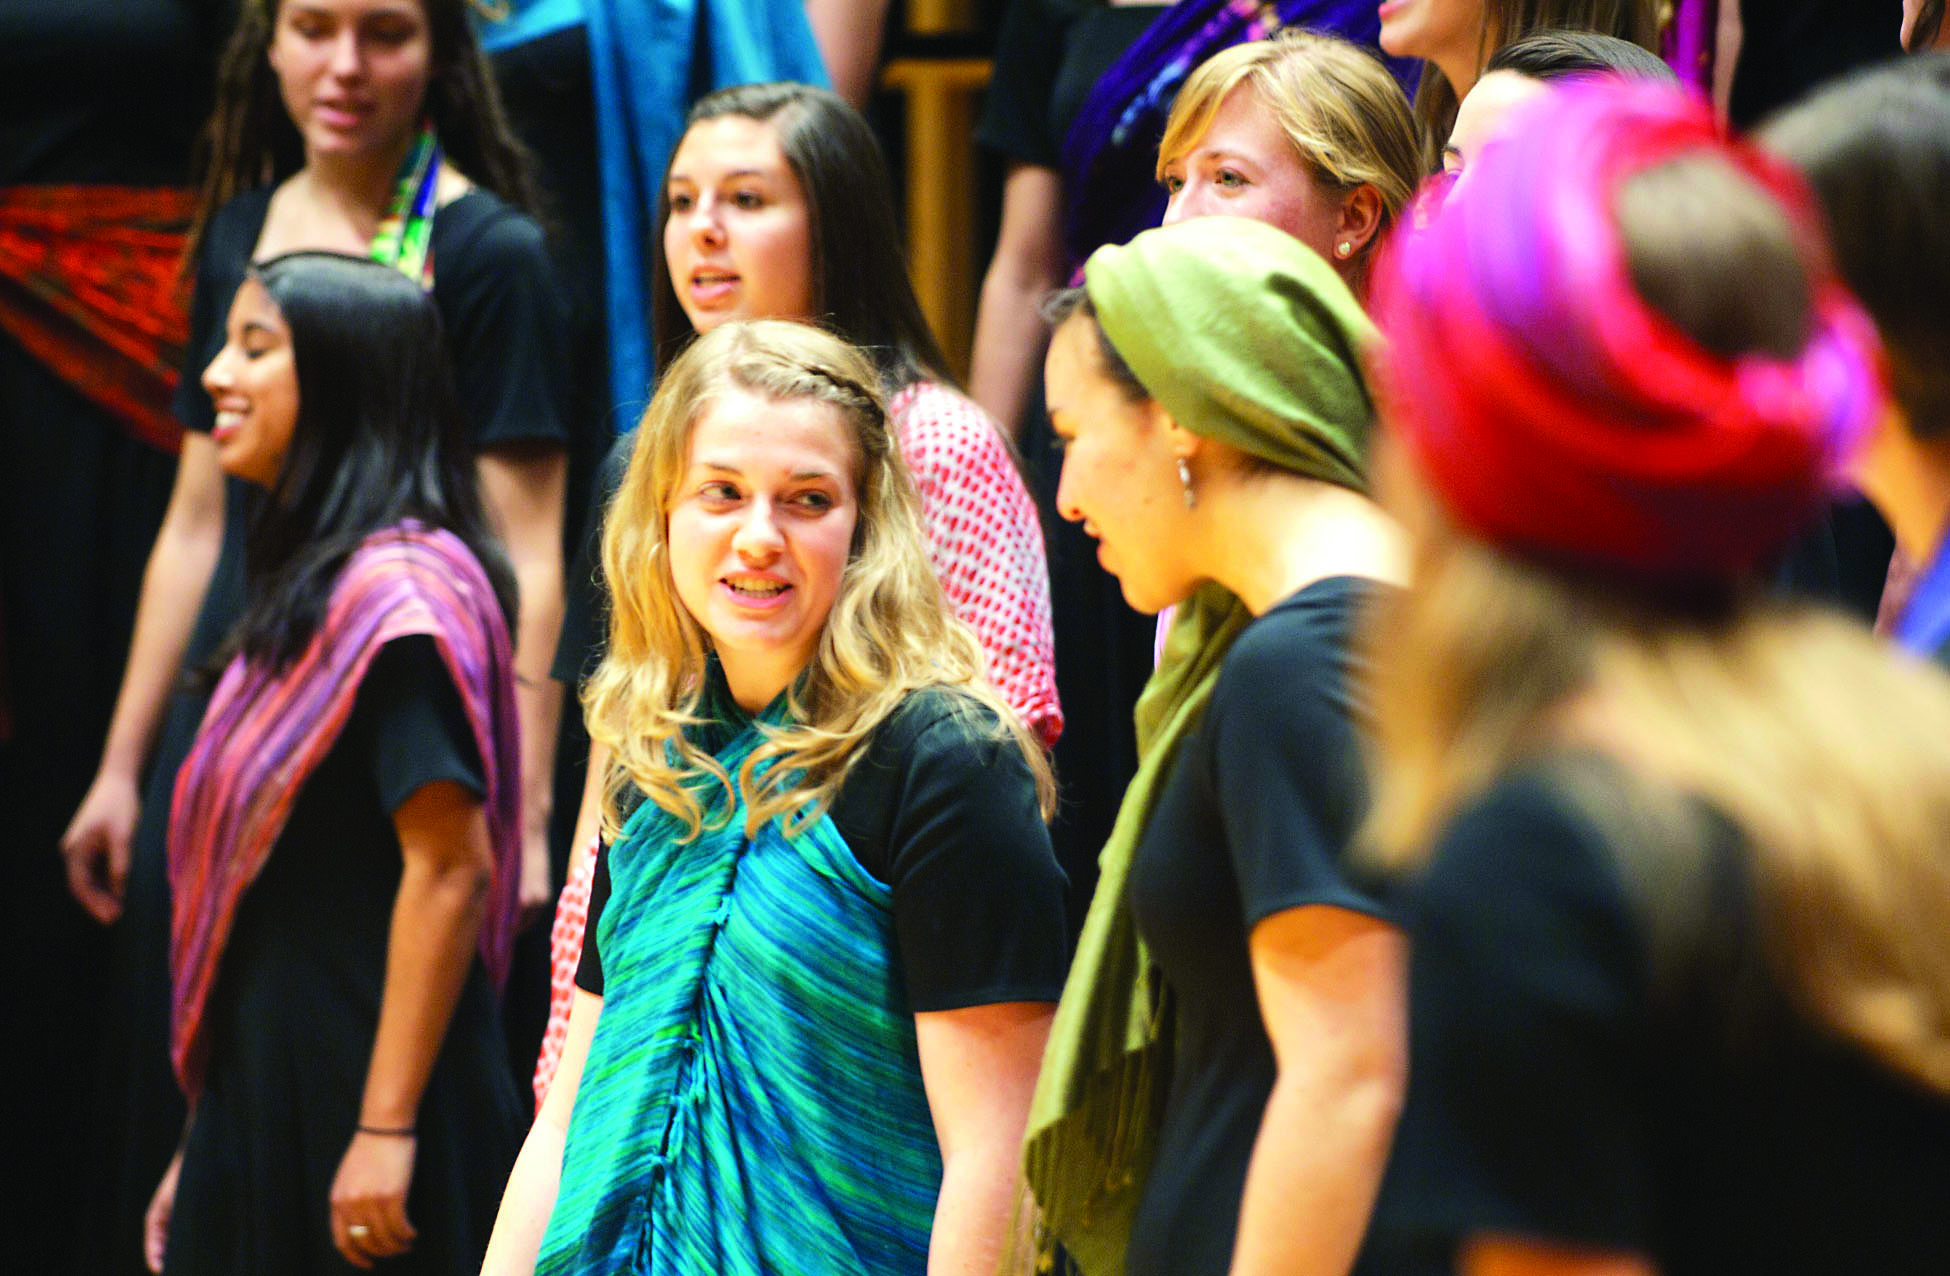 Voices of the Earth performs in Sauder Concert Hall